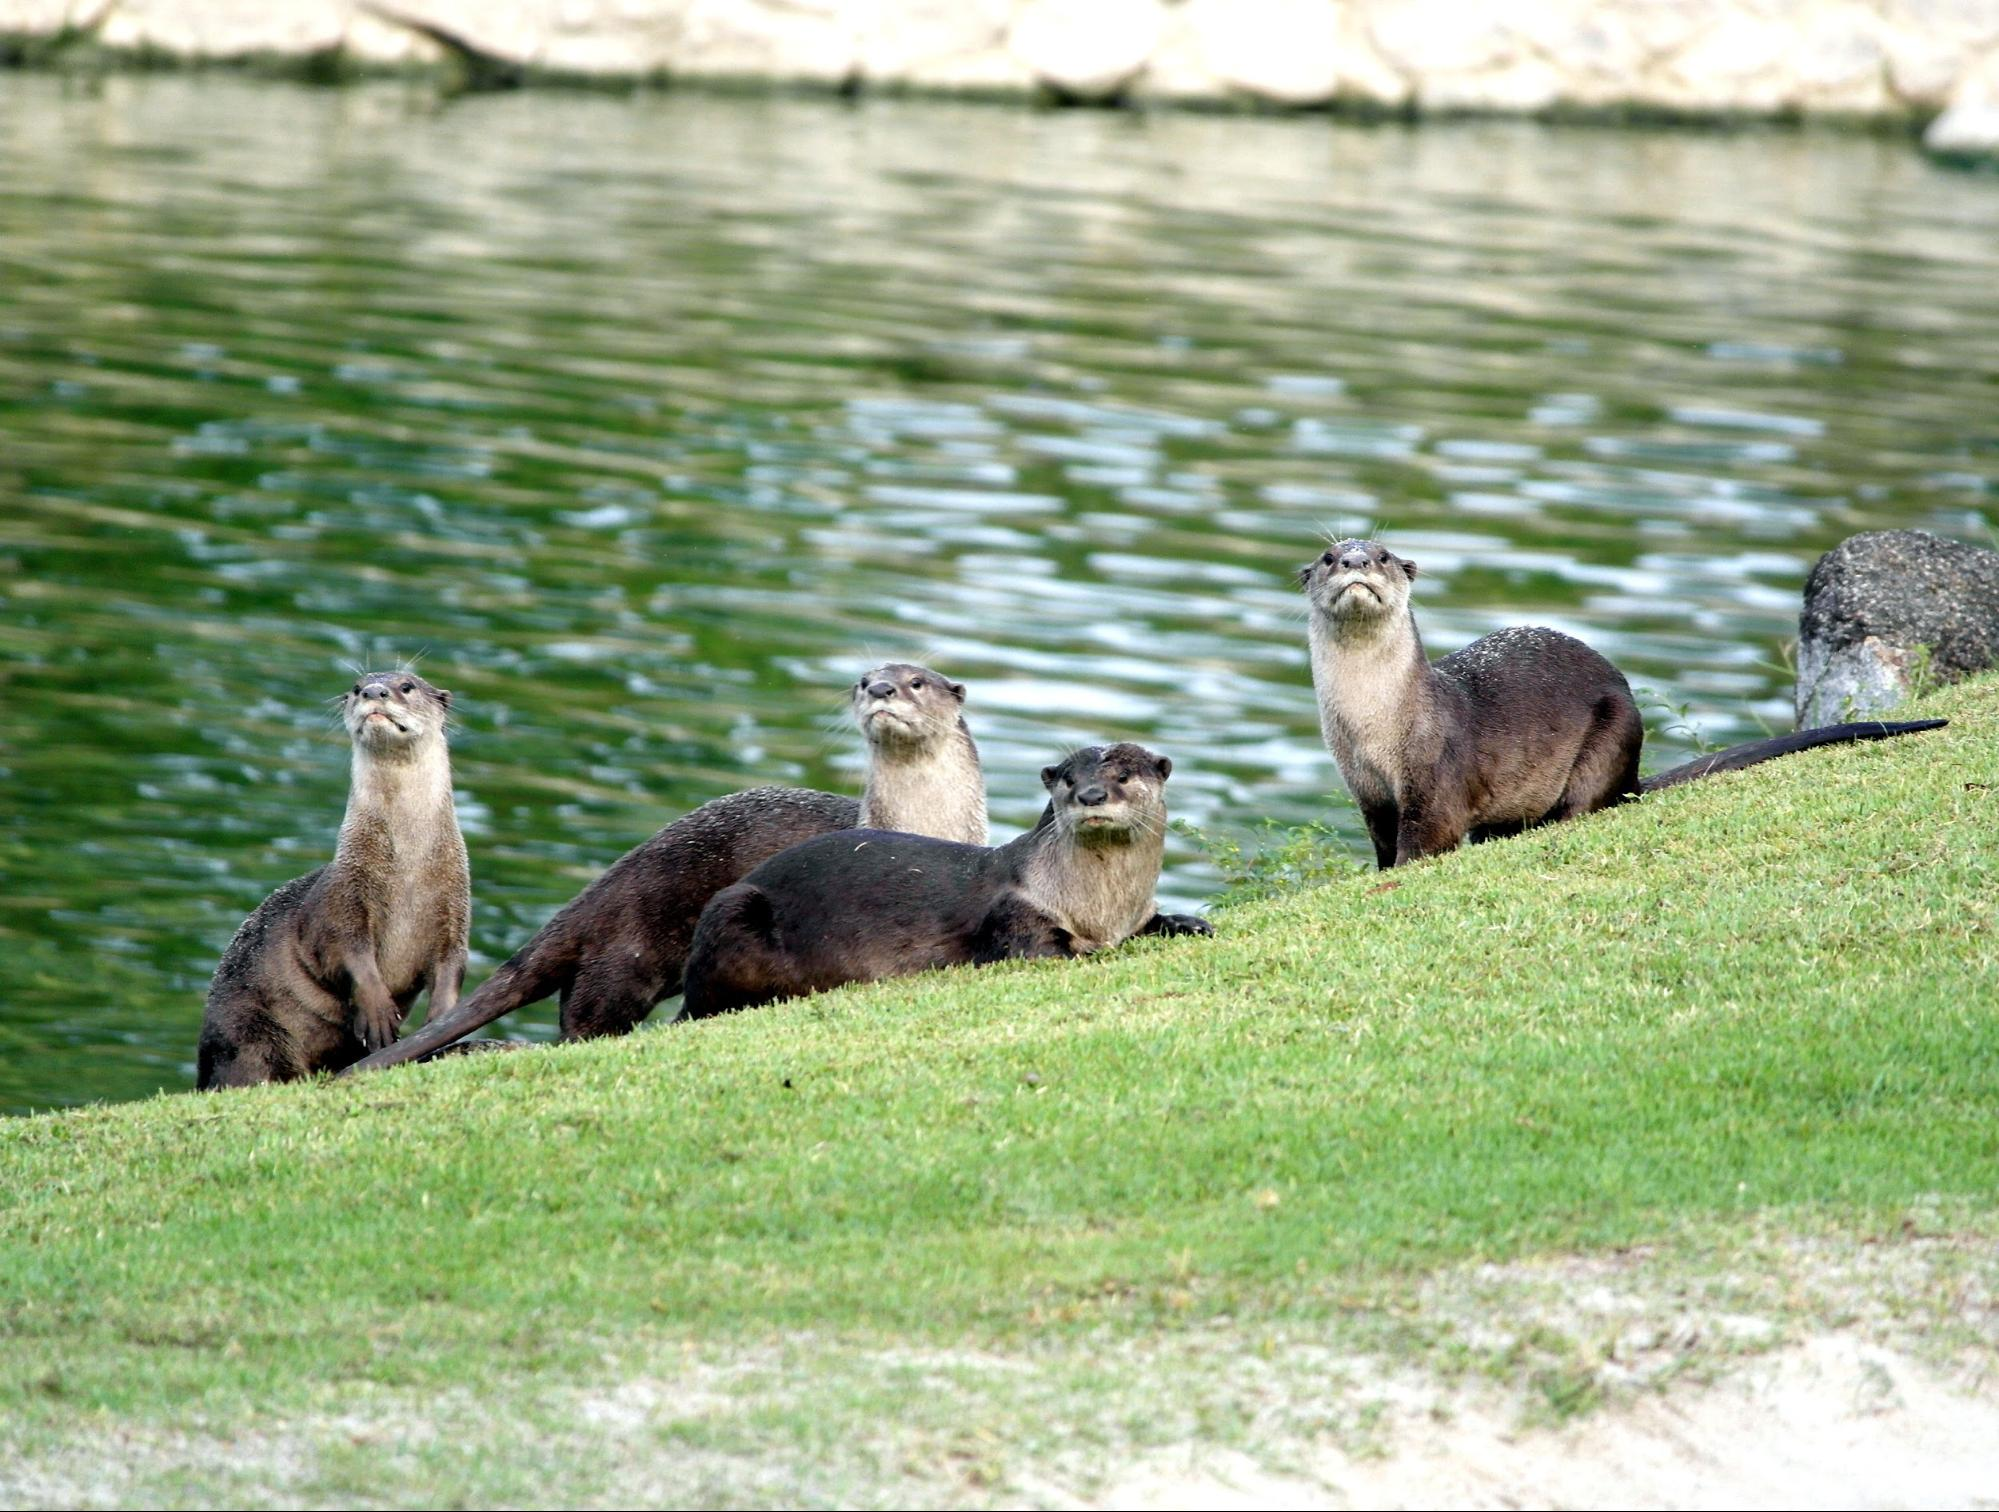 Singapore's Love for Otters Reveals Its Double-Standards towards Wildlife in the City